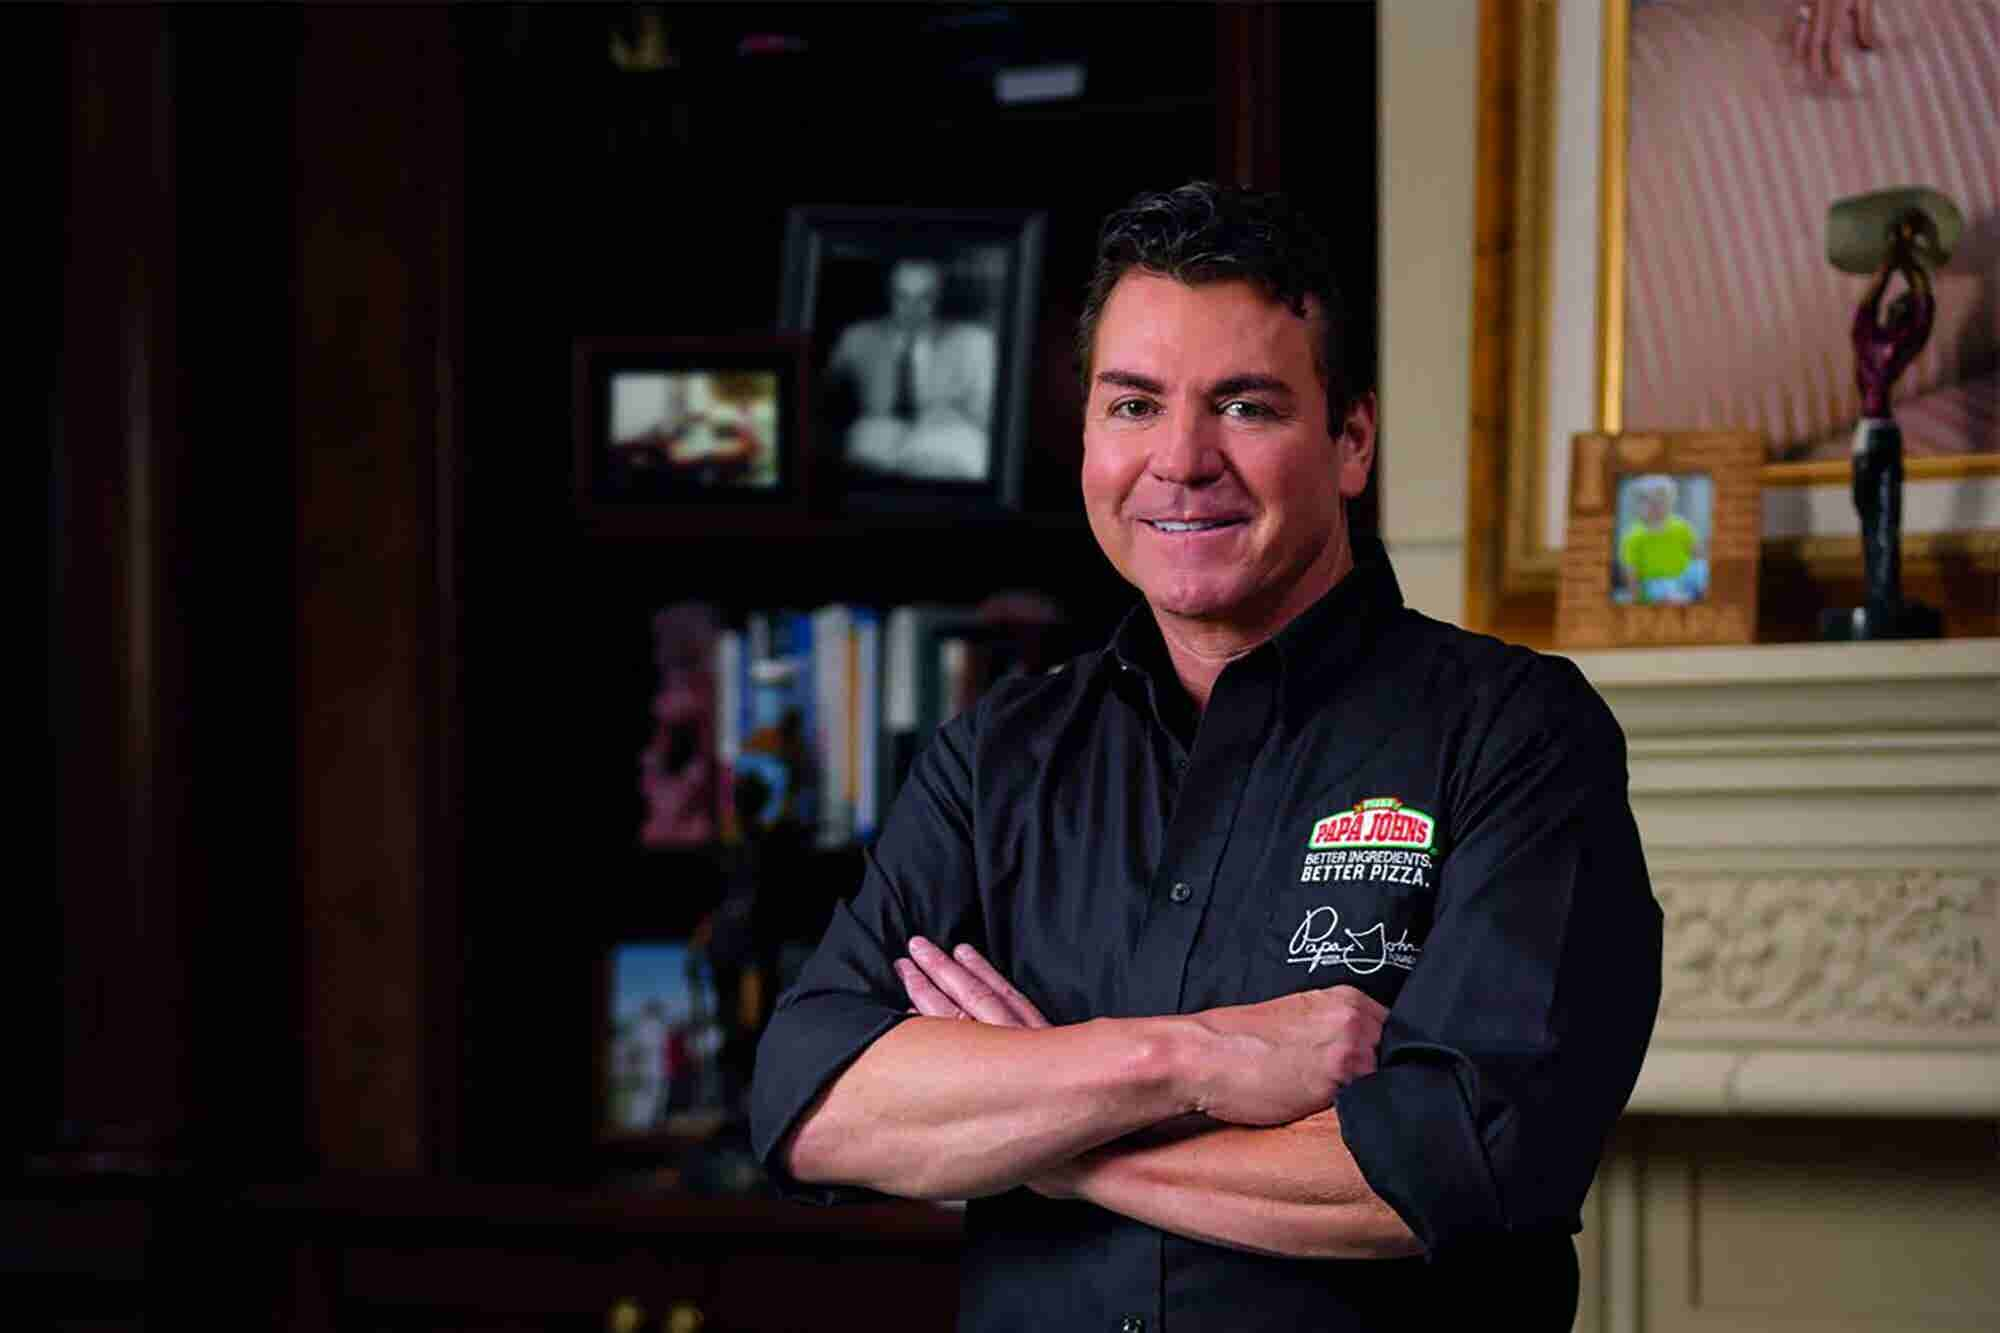 Ousted Papa John's Founder Creates Website to 'Save' His Company and Get the 'Truth Out There'